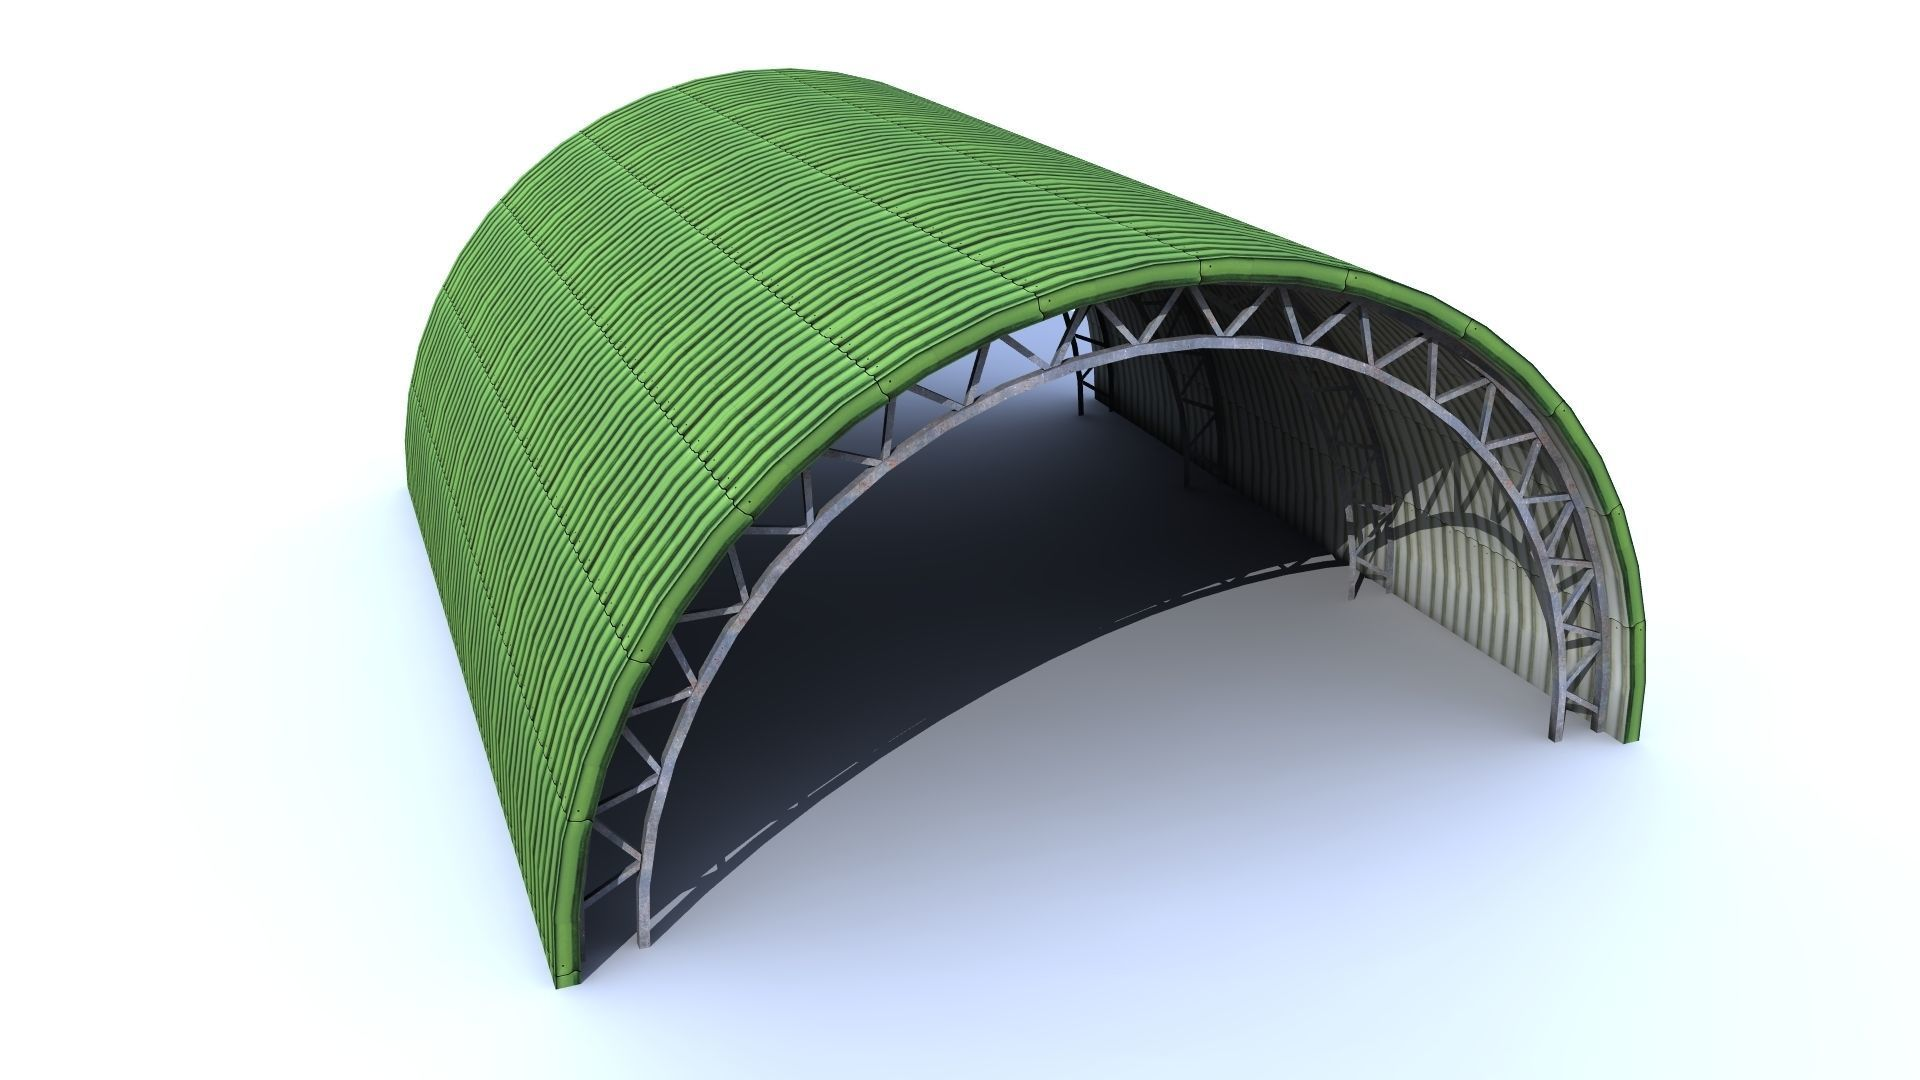 Aircraft low poly - Shelter Hangar FREE